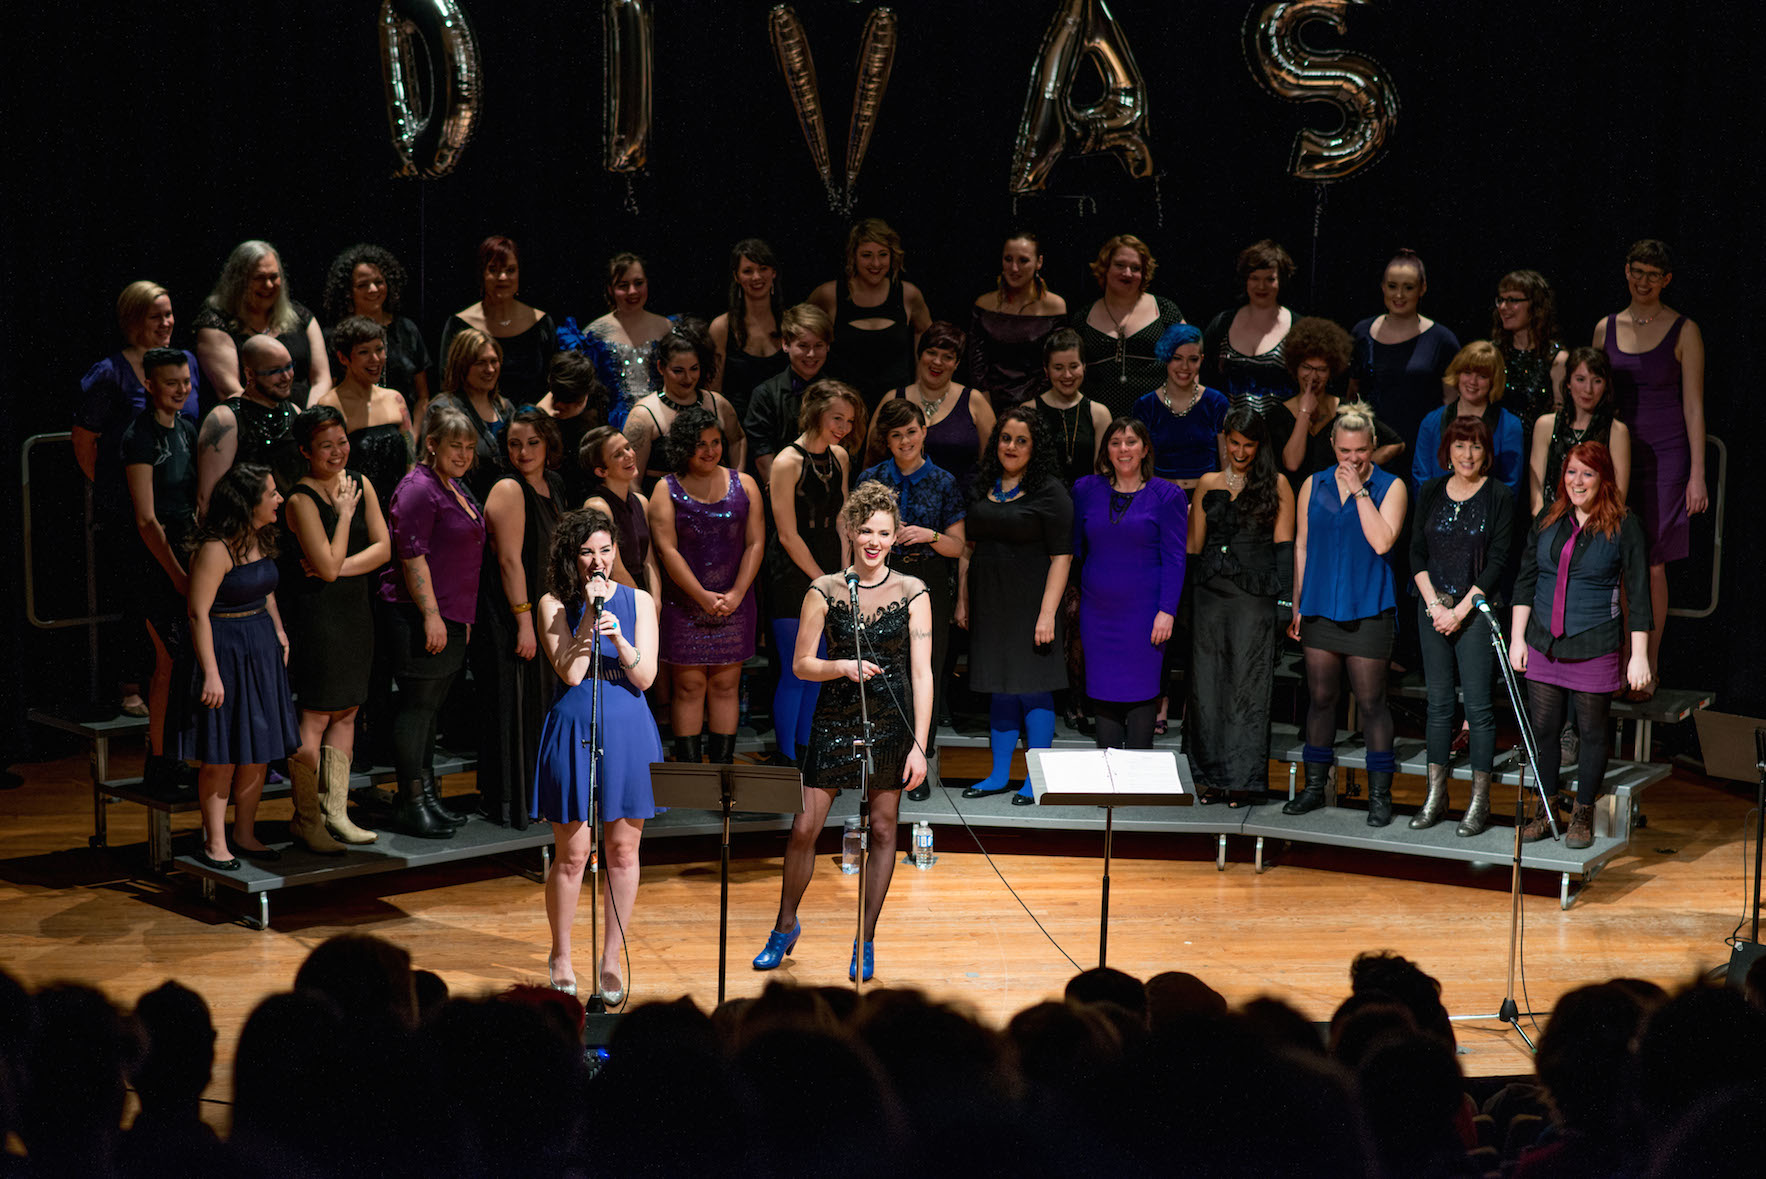 Femme city choir in divas! at vancouver community college auditorium, vancouver bc 2015 photo by rdm photography and